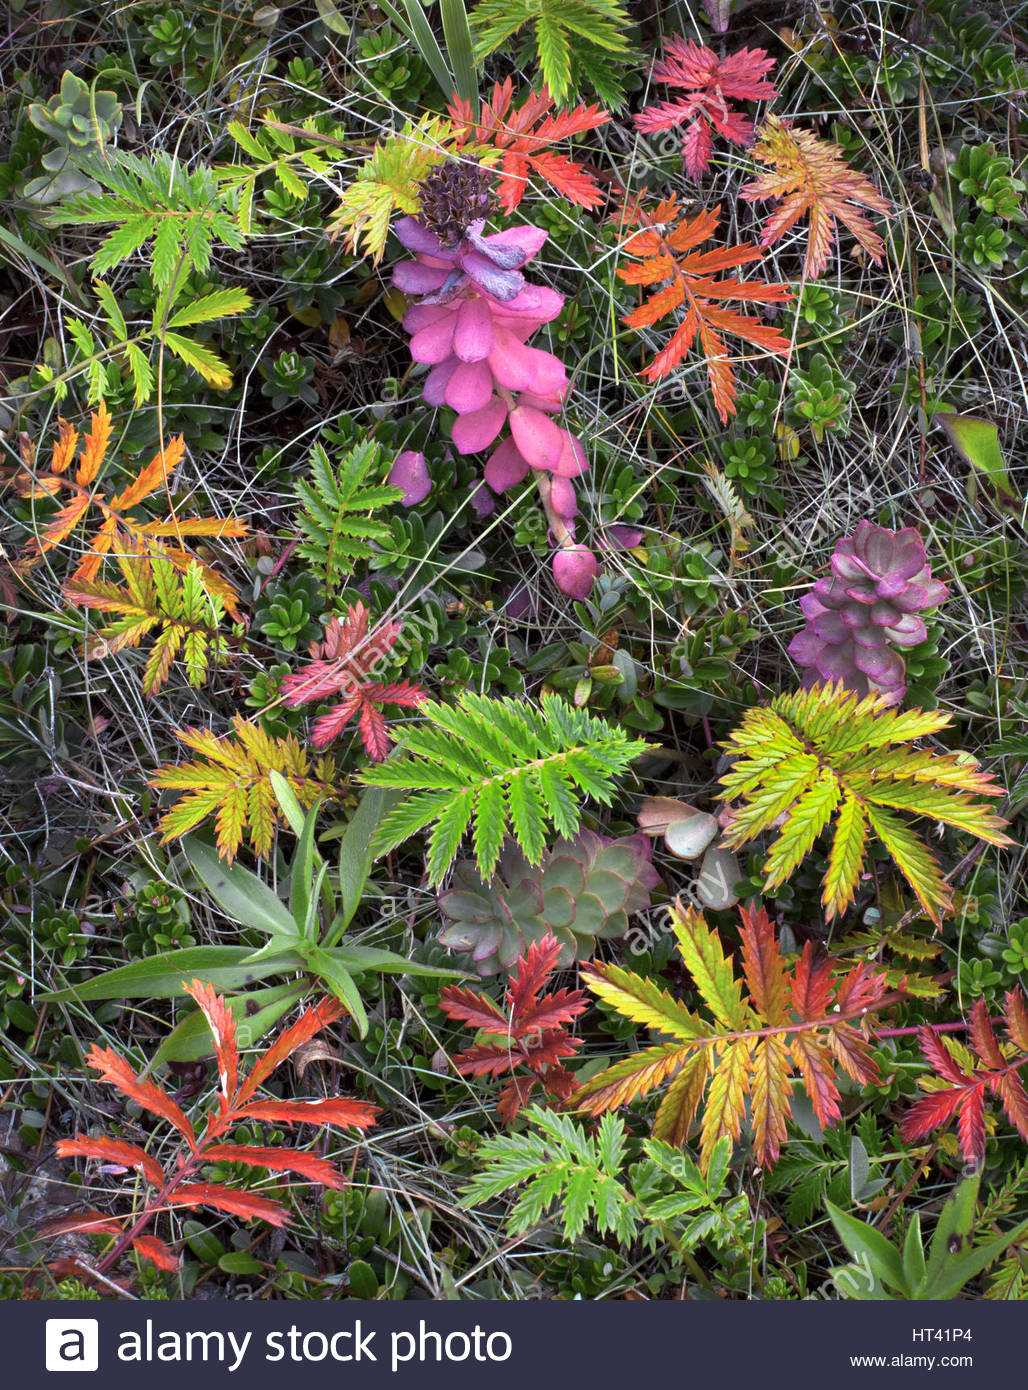 0902-1016 -  Stonecrop [Sedum sp.] and silverweed cinquefoil  [Argentina anserina] and other low lying plants.  - Stock Image